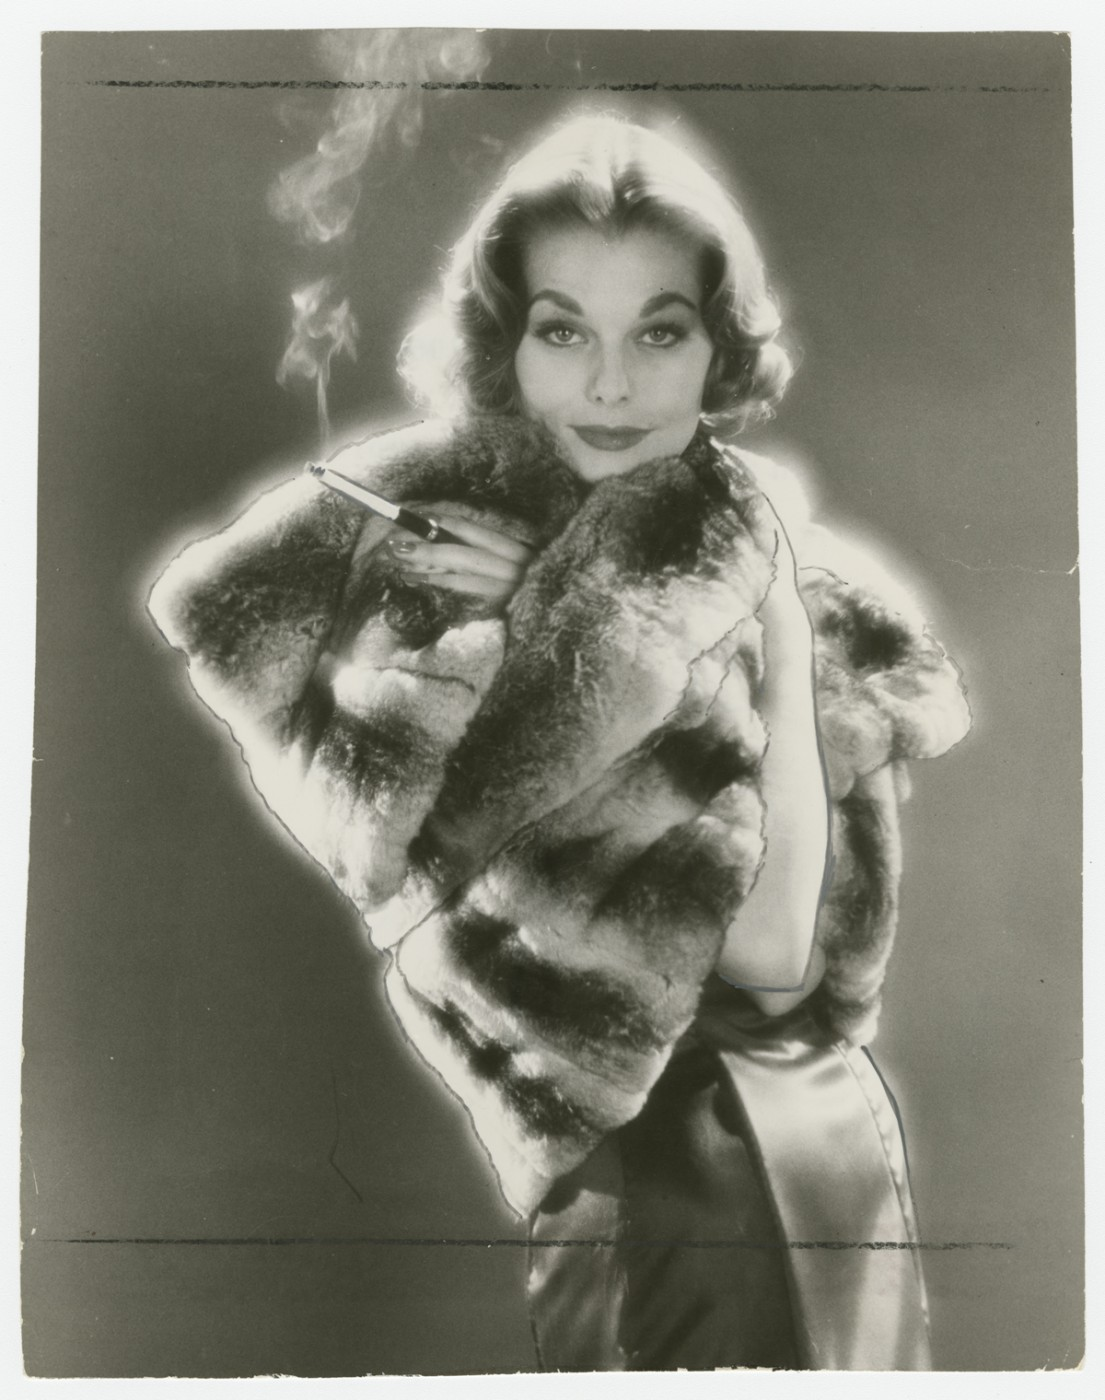 Unidentified Photographer, </span><span><em>Jacques Heim designed chinchilla stole, which may be worn in different ways</em>, </span><span>1958. Gelatin silver print, 9 x 7&quot;. Gift of The Globe and Mail newspaper to the Canadian Photography Institute of the National Gallery of Canada.